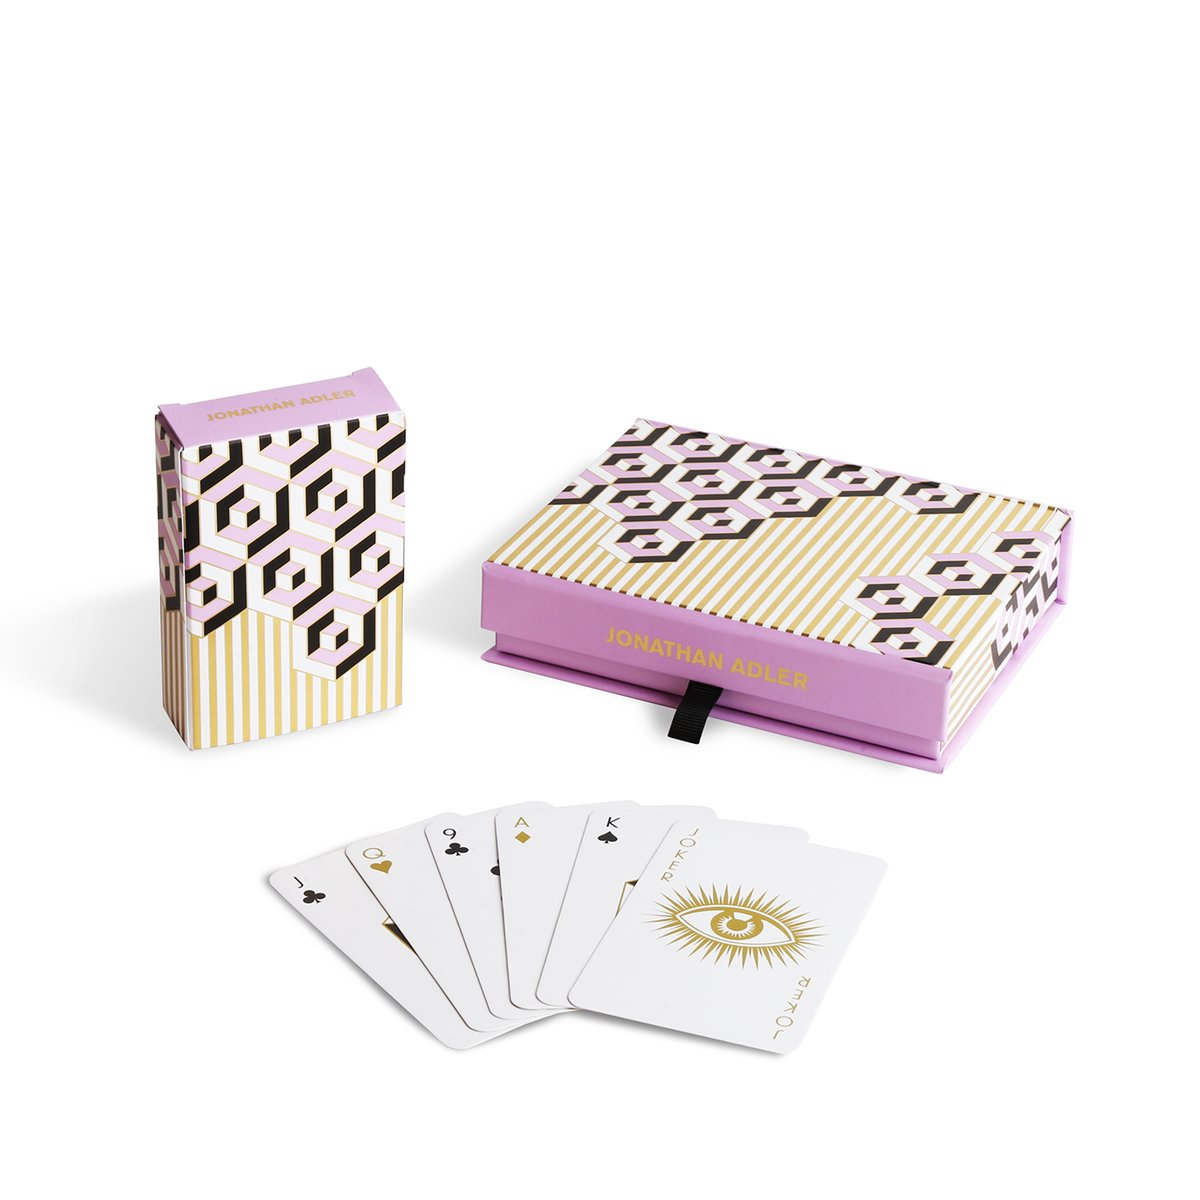 The Versailles Playing Card Set